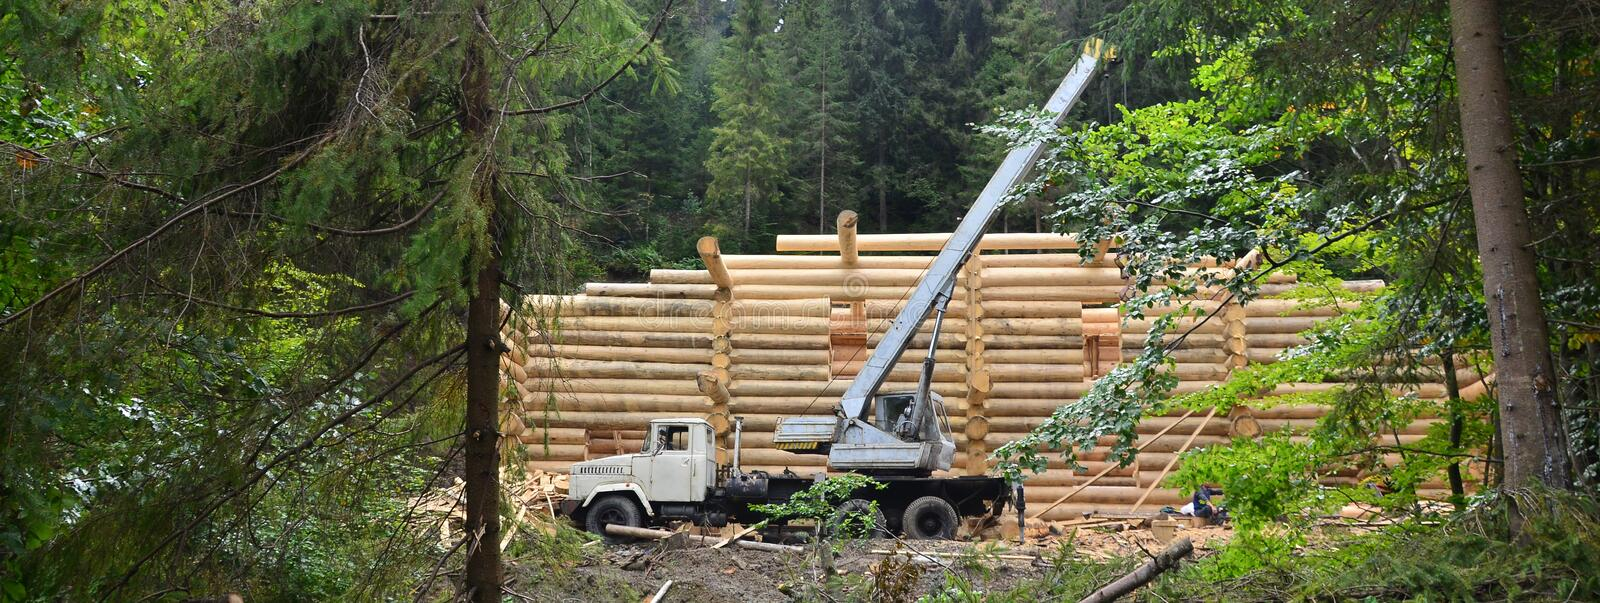 The process of building a wooden house from wooden beams of cylindrical shape. Crane in working condition royalty free stock image